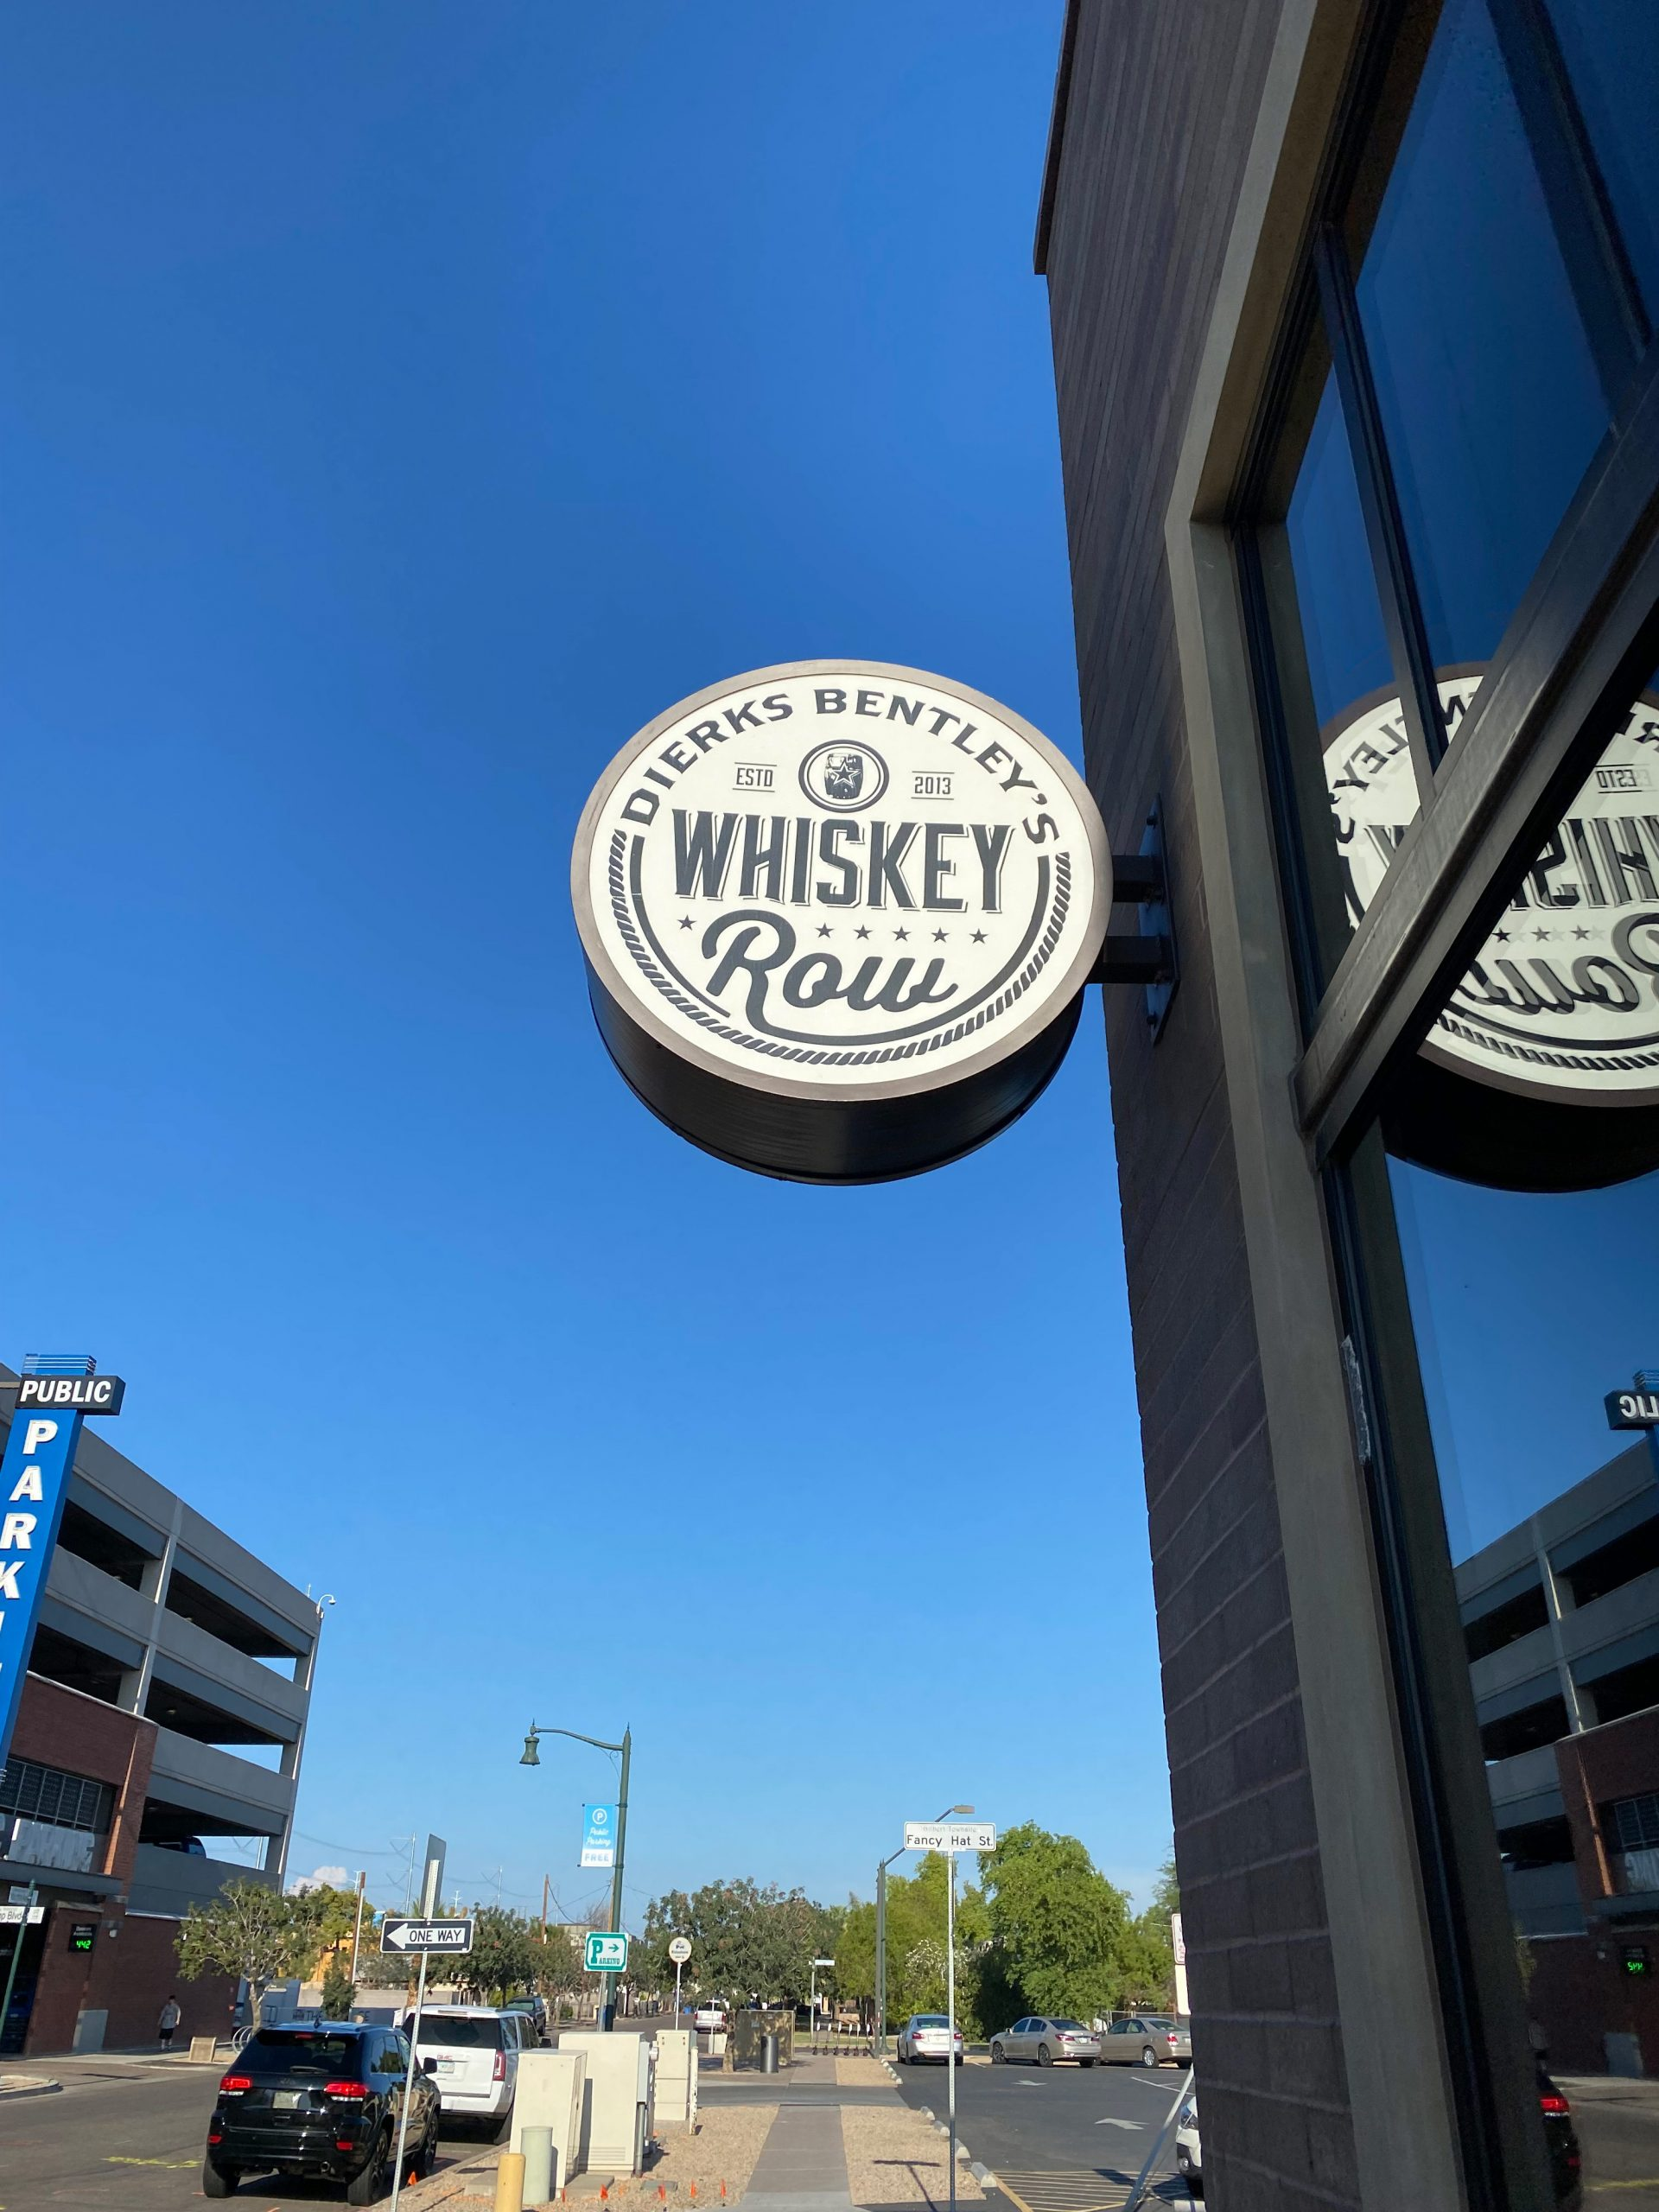 Sign outside building at Dierks Bentley's Whiskey Row Gilbert. Photo by Matthew Johnson, PHOENIX